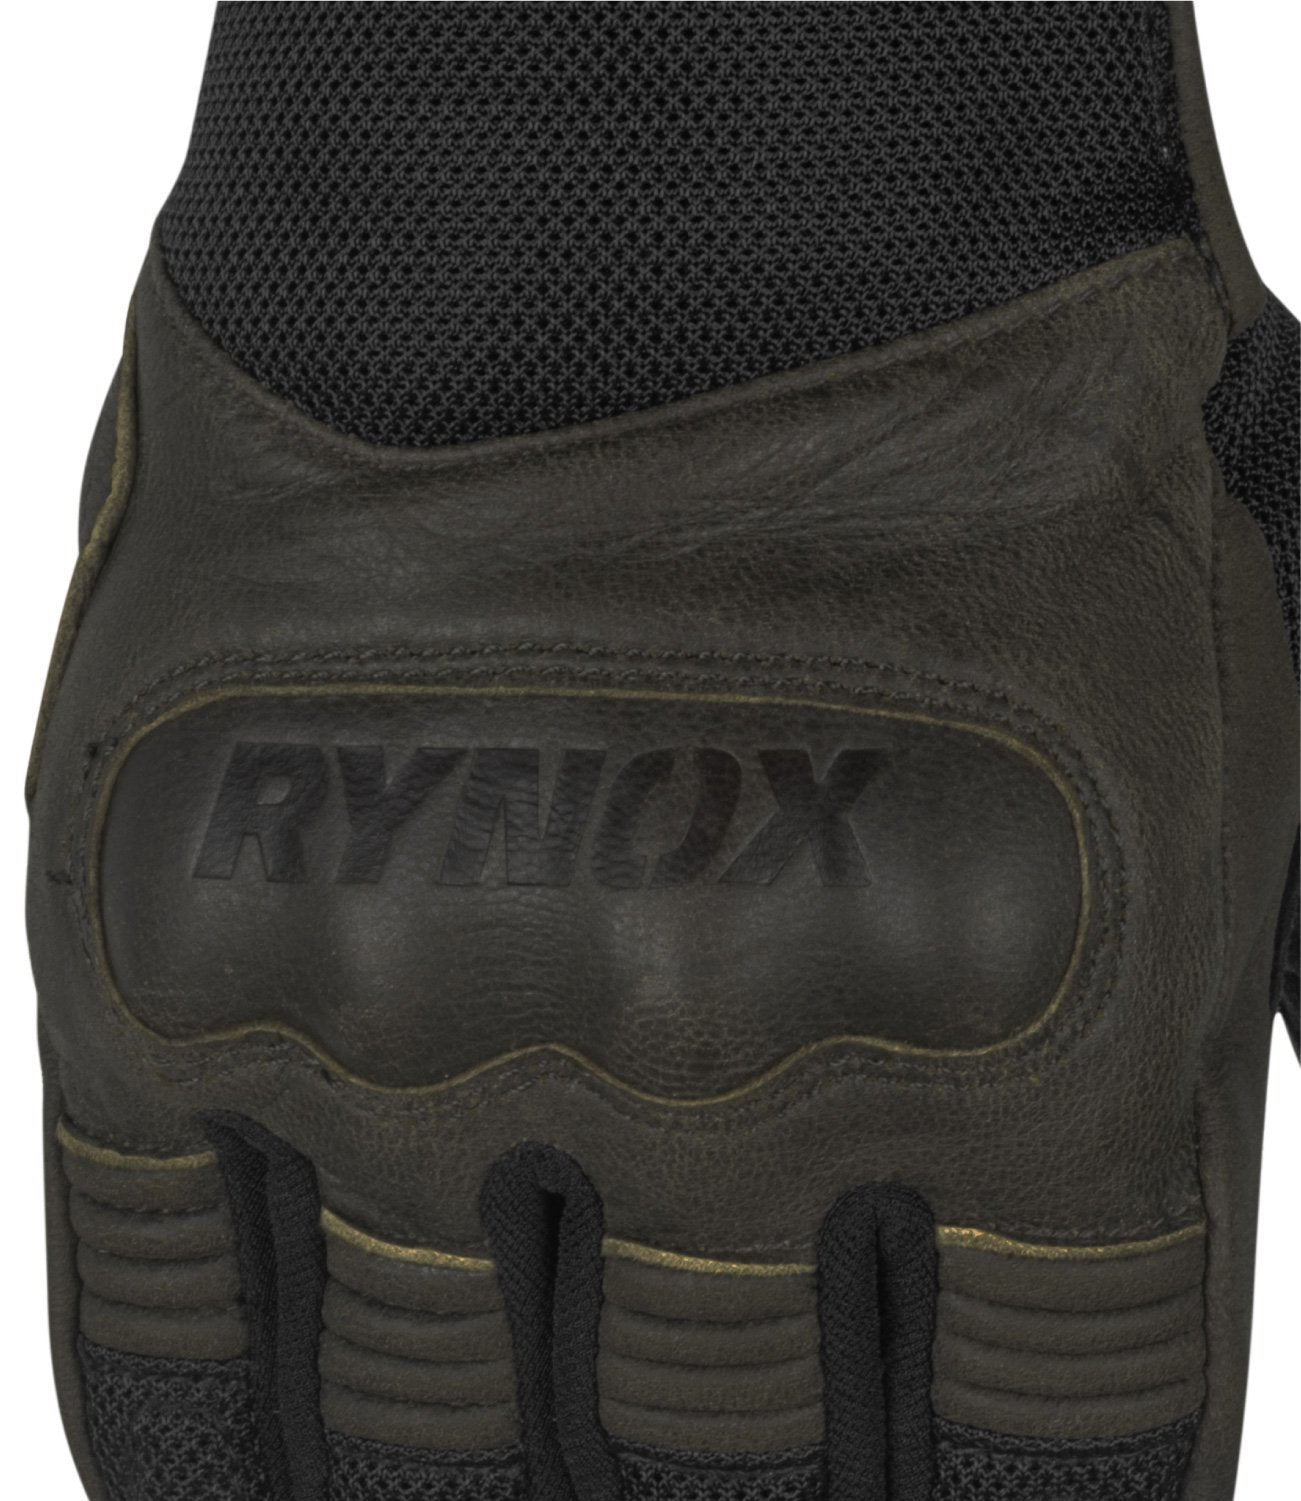 Rynox Urban Gloves Copper 7